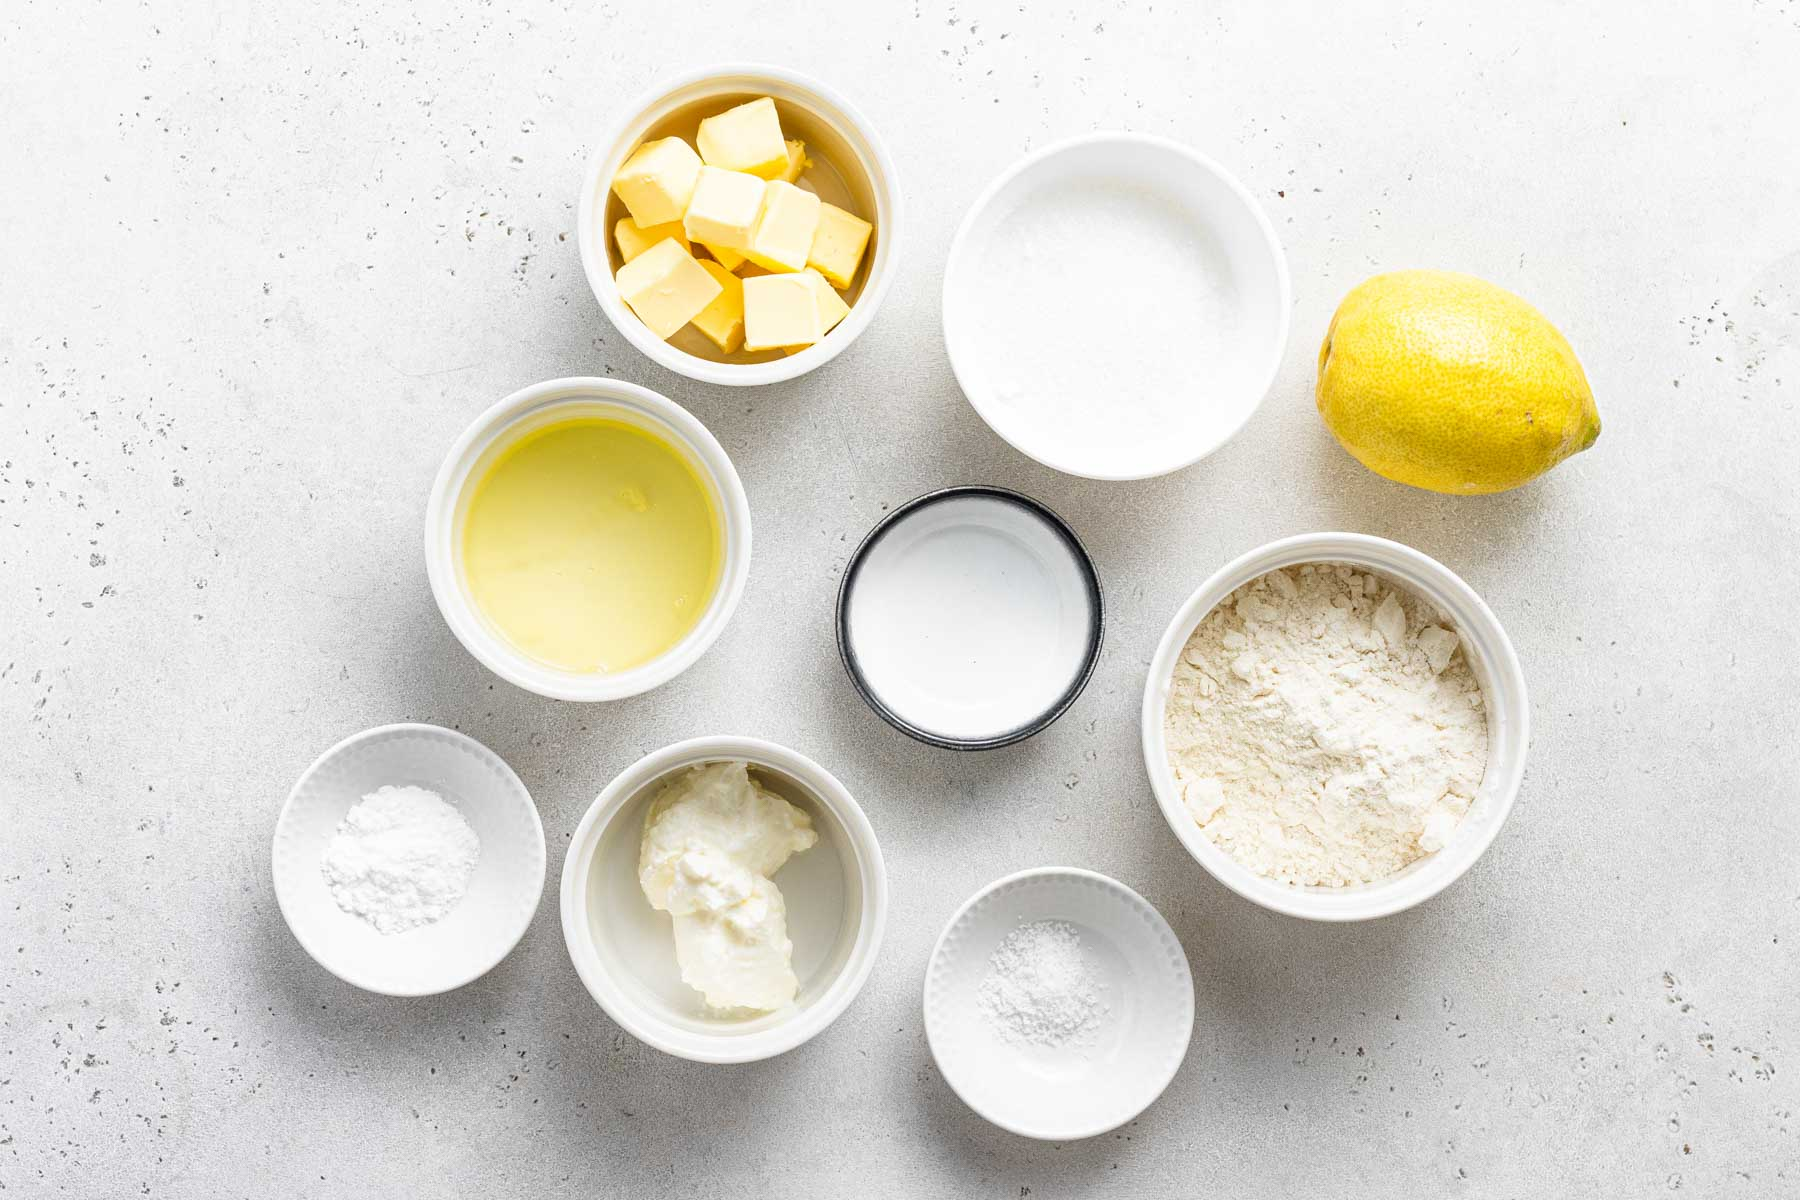 Ingredients for lemon cupcakes measured in white bowls.